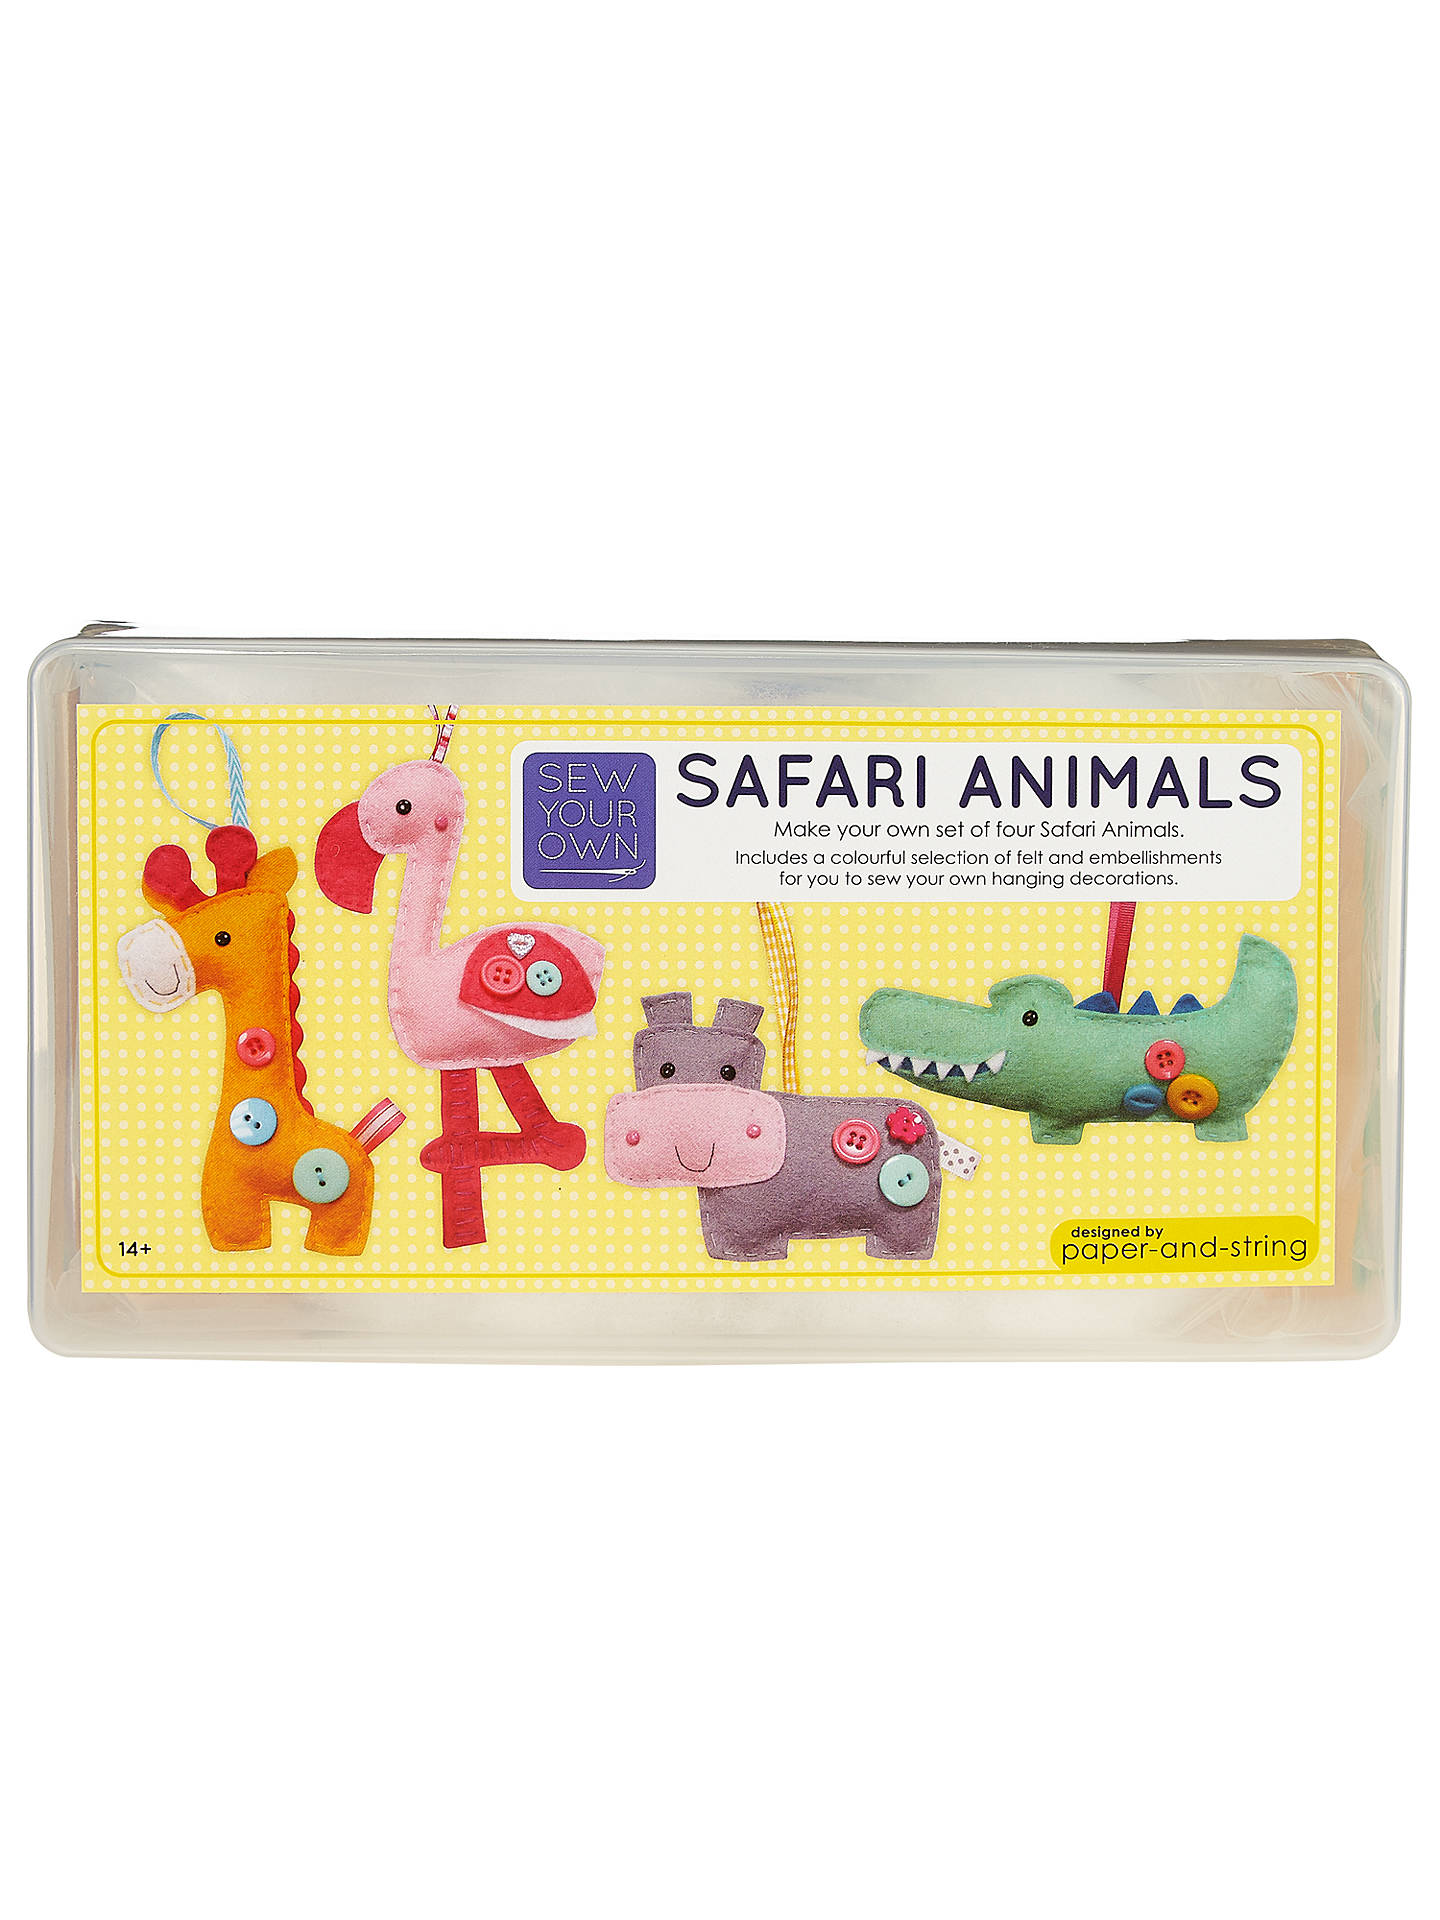 BuyPaper and String Sew Your Own Safari Animals Kit Online at johnlewis.com